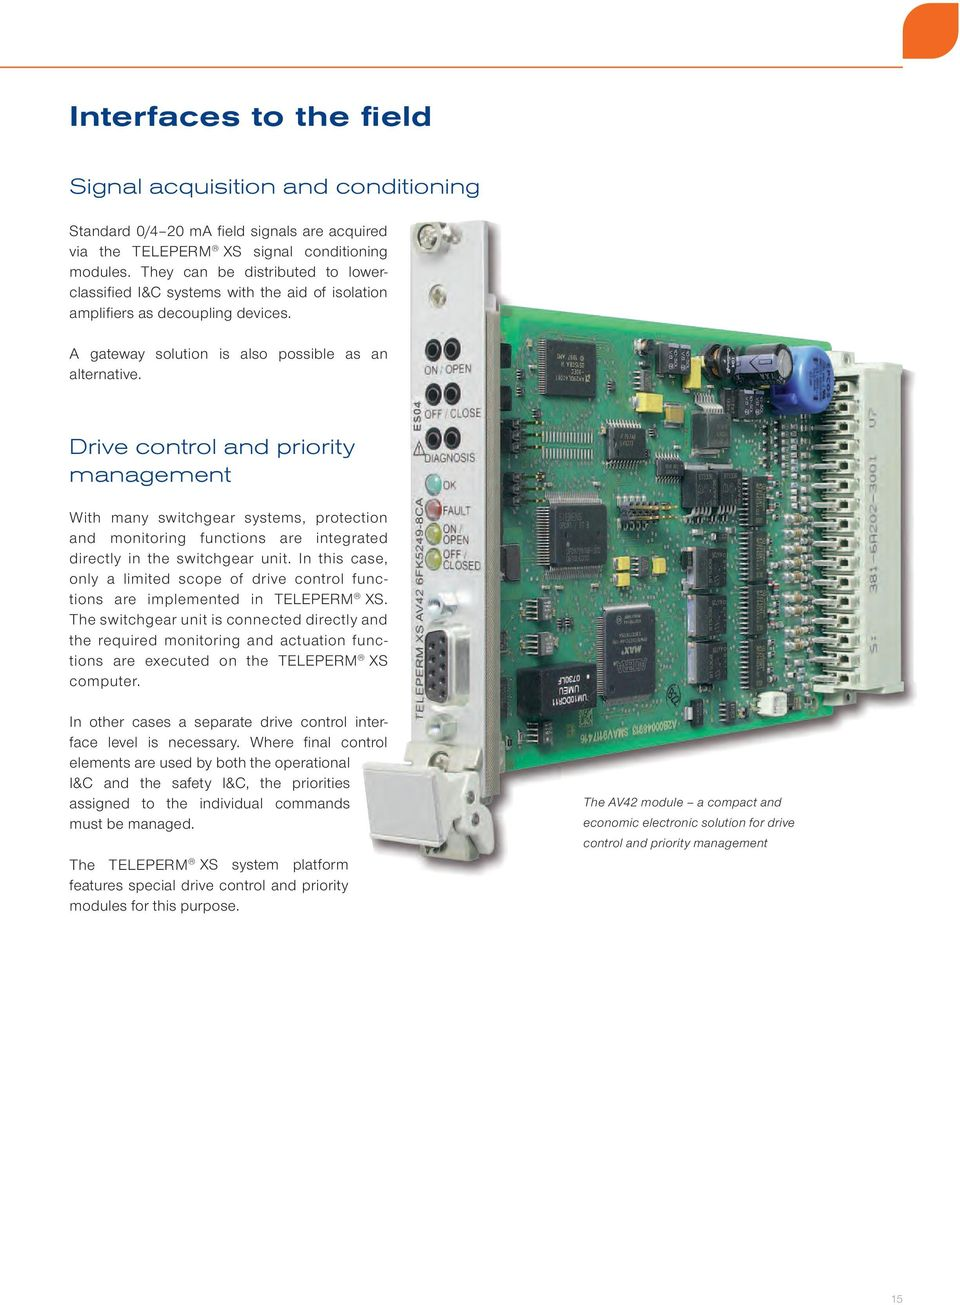 Drive control and priority management With many switchgear systems, protection and monitoring functions are integrated directly in the switchgear unit.